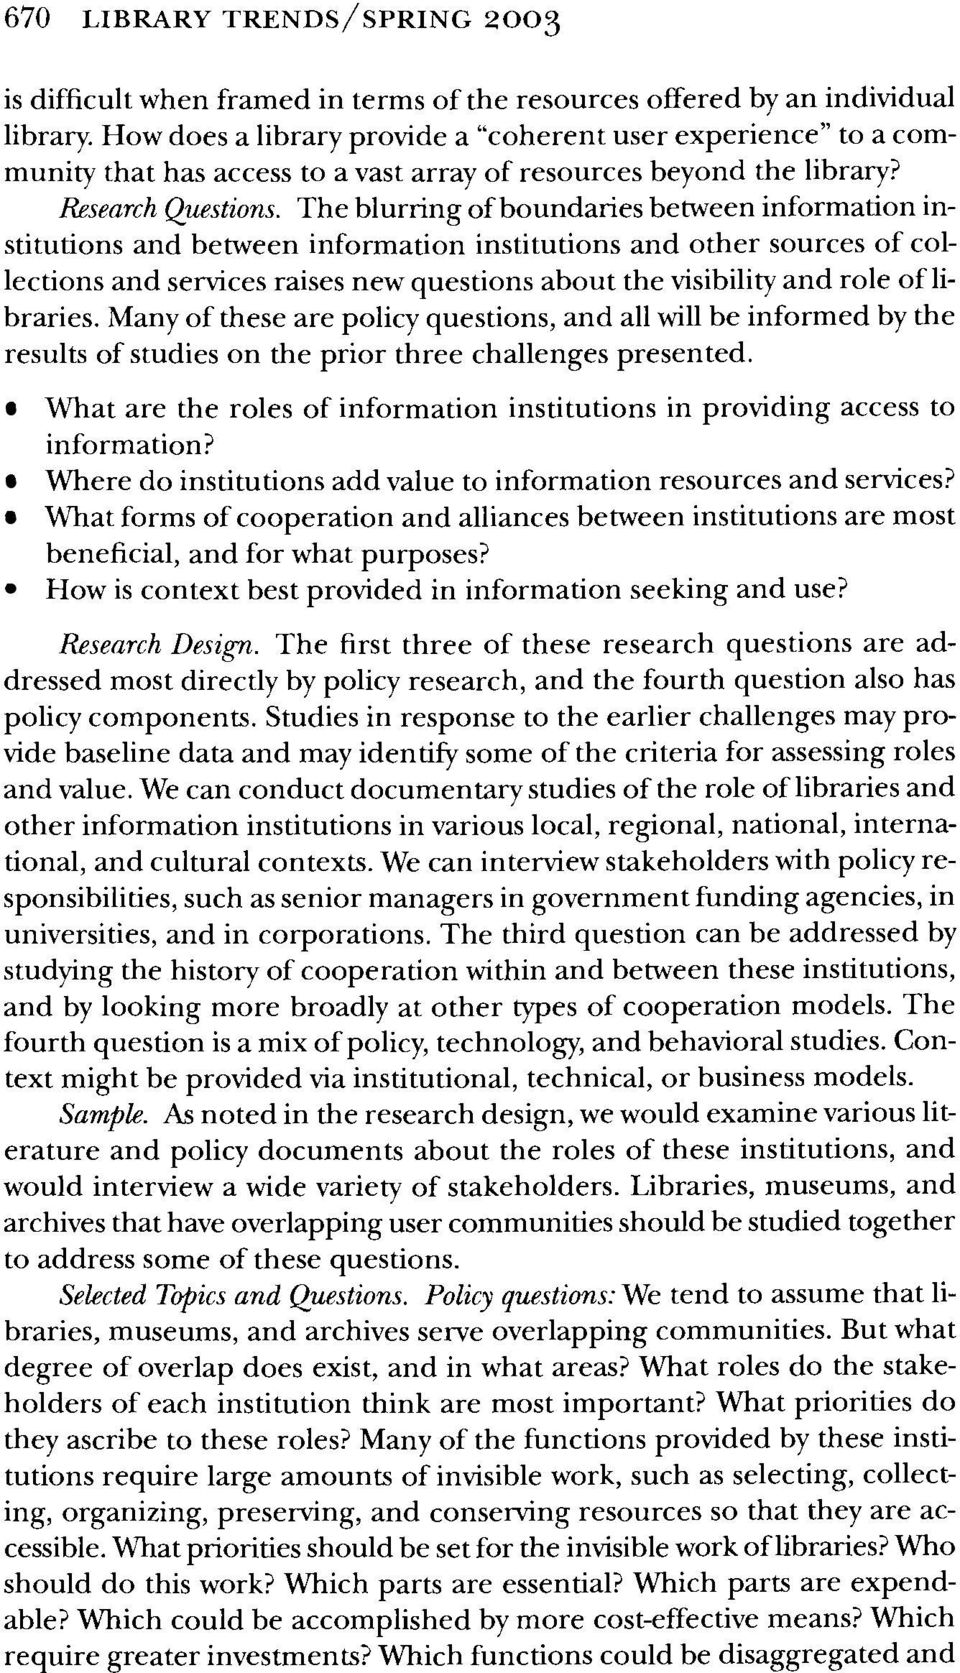 The blurring of boundaries between information institutions and between information institutions and other sources of collections and services raises new questions about the visibility and role of